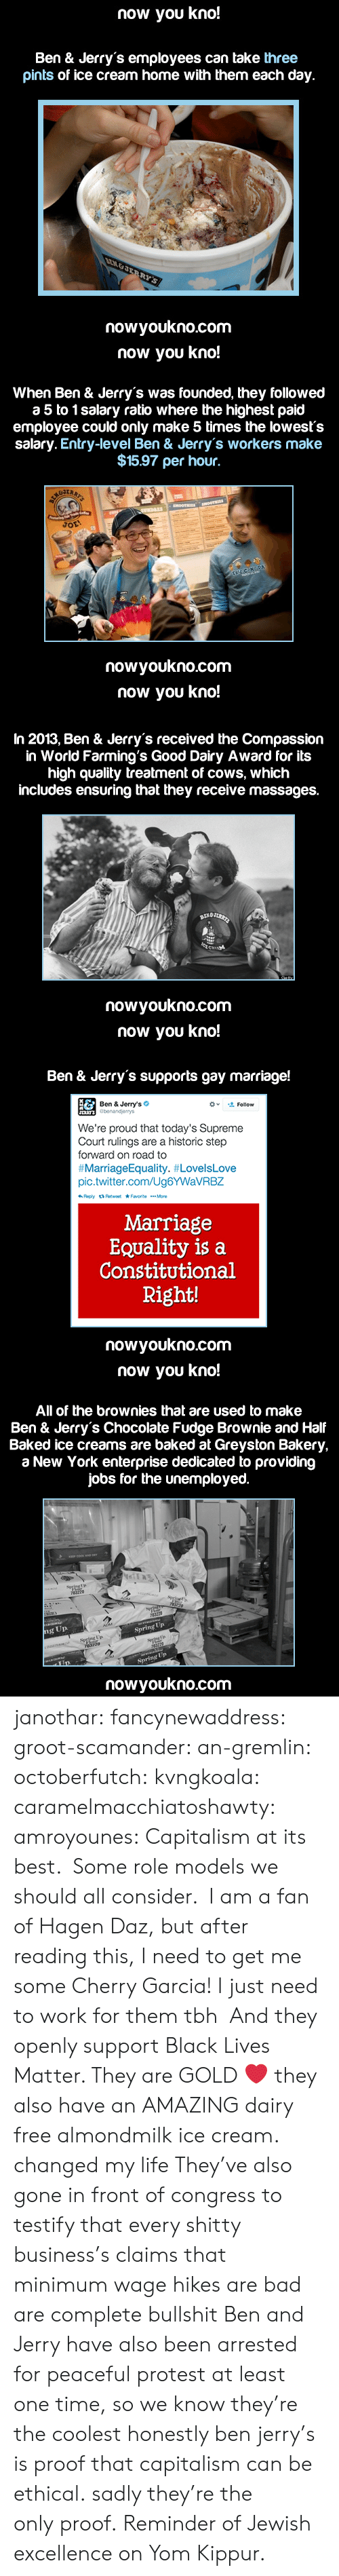 Bad, Baked, and Black Lives Matter: now you kno!  Ben & Jerry's employees can take three  pints of ice cream home with them each day.  nowyoukno.com   now you kno!  When Ben & Jerry's was founded, they followed  a 5 to 1 salary ratio where the highest paid  employee could only make 5 times the lowests  salary. Entry-level Ben & Jerry's workers make  $15.97 per hour.  JER  nowyoukno.com   now you kno!  In 2013, Ben & Jerry's received the Compassion  in World Farming's Good Dairy Award for its  high quality treatment of cows, which  includes ensuring that they receive massages.  nowyoukno.com   now you kno!  Ben & Jerry's supports gay marriage!  Ben & Jerry's  Gbenanderys  '오 Follow  We're proud that today's Supreme  Court rulings are a historic step  forward on road to  #MarriageEquality. #LovelsLove  pic.twitter.com/Ug6YWaVRBZ  Marriage  EQuality is a  Constitutional  Right!  nowyoukno.com   now you kno!  All of the brownies that are used to make  Ben & Jerry's Chocolate Fudge Brownie and Half  Baked ice creams are baked at Greyston Bakery,  a New York enterprise dedicated to providing  jobs for the unemployed.  ng Up  Spring Up  Spring Up  nowyoukno.com janothar: fancynewaddress:  groot-scamander:  an-gremlin:  octoberfutch:  kvngkoala:  caramelmacchiatoshawty:  amroyounes:  Capitalism at its best.  Some role models we should all consider.  I am a fan of Hagen Daz, but after reading this, I need to get me some Cherry Garcia!  I just need to work for them tbh   And they openly support Black Lives Matter. They are GOLD ❤️  they also have an AMAZING dairy free almondmilk ice cream. changed my life  They've also gone in front of congress to testify that every shitty business's claims that minimum wage hikes are bad are complete bullshit   Ben and Jerry have also been arrested for peaceful protest at least one time, so we know they're the coolest  honestly ben  jerry's is proof that capitalism can be ethical. sadly they're the only proof.  Reminder of Jewish excellence on Yom Kippur.